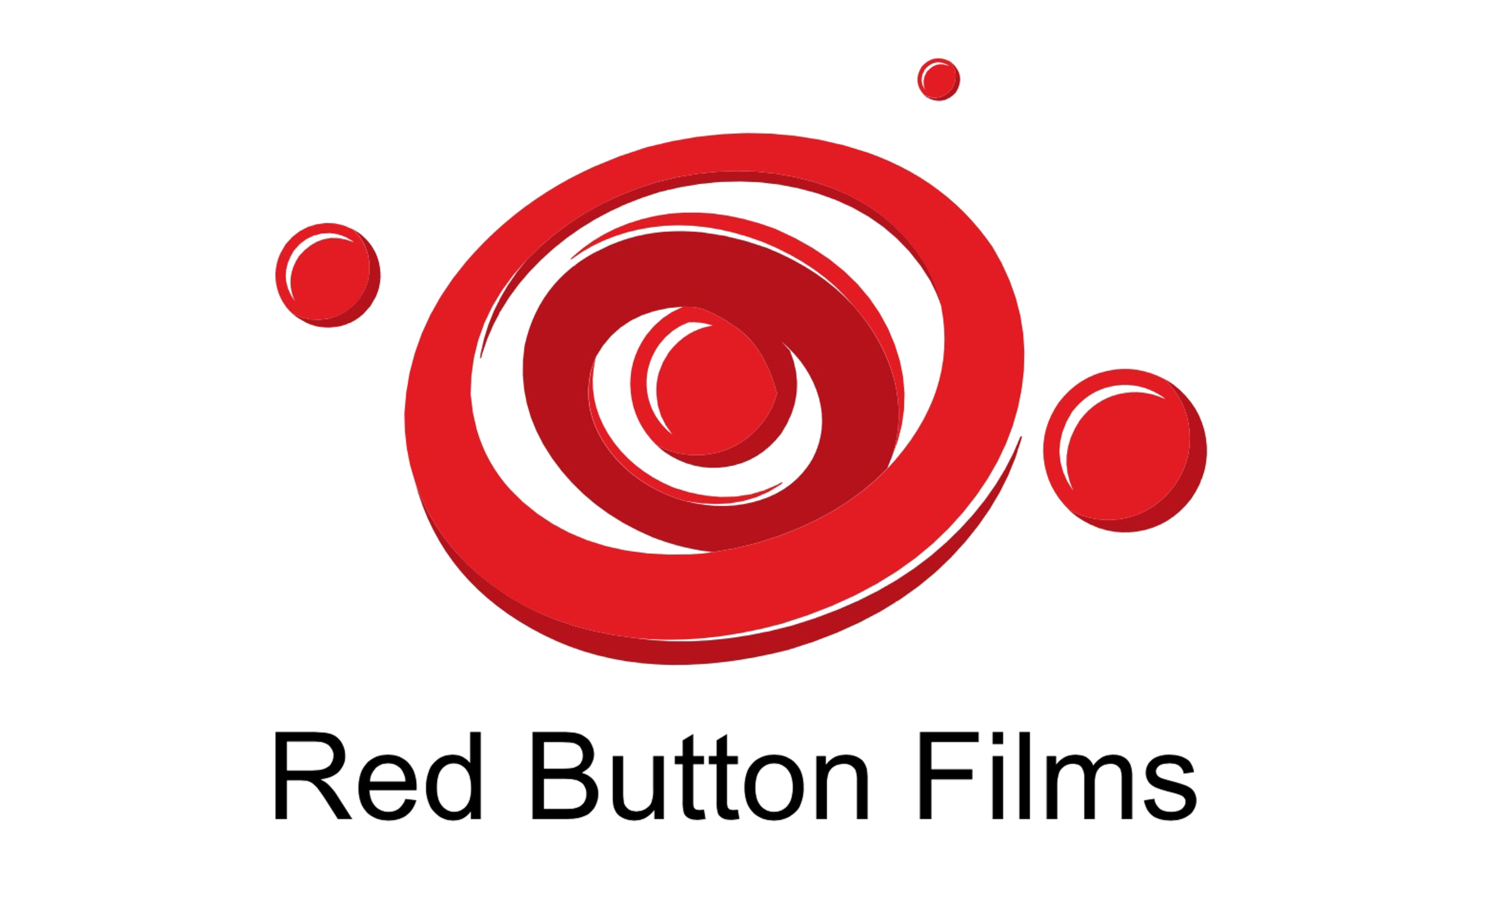 Red Button Films